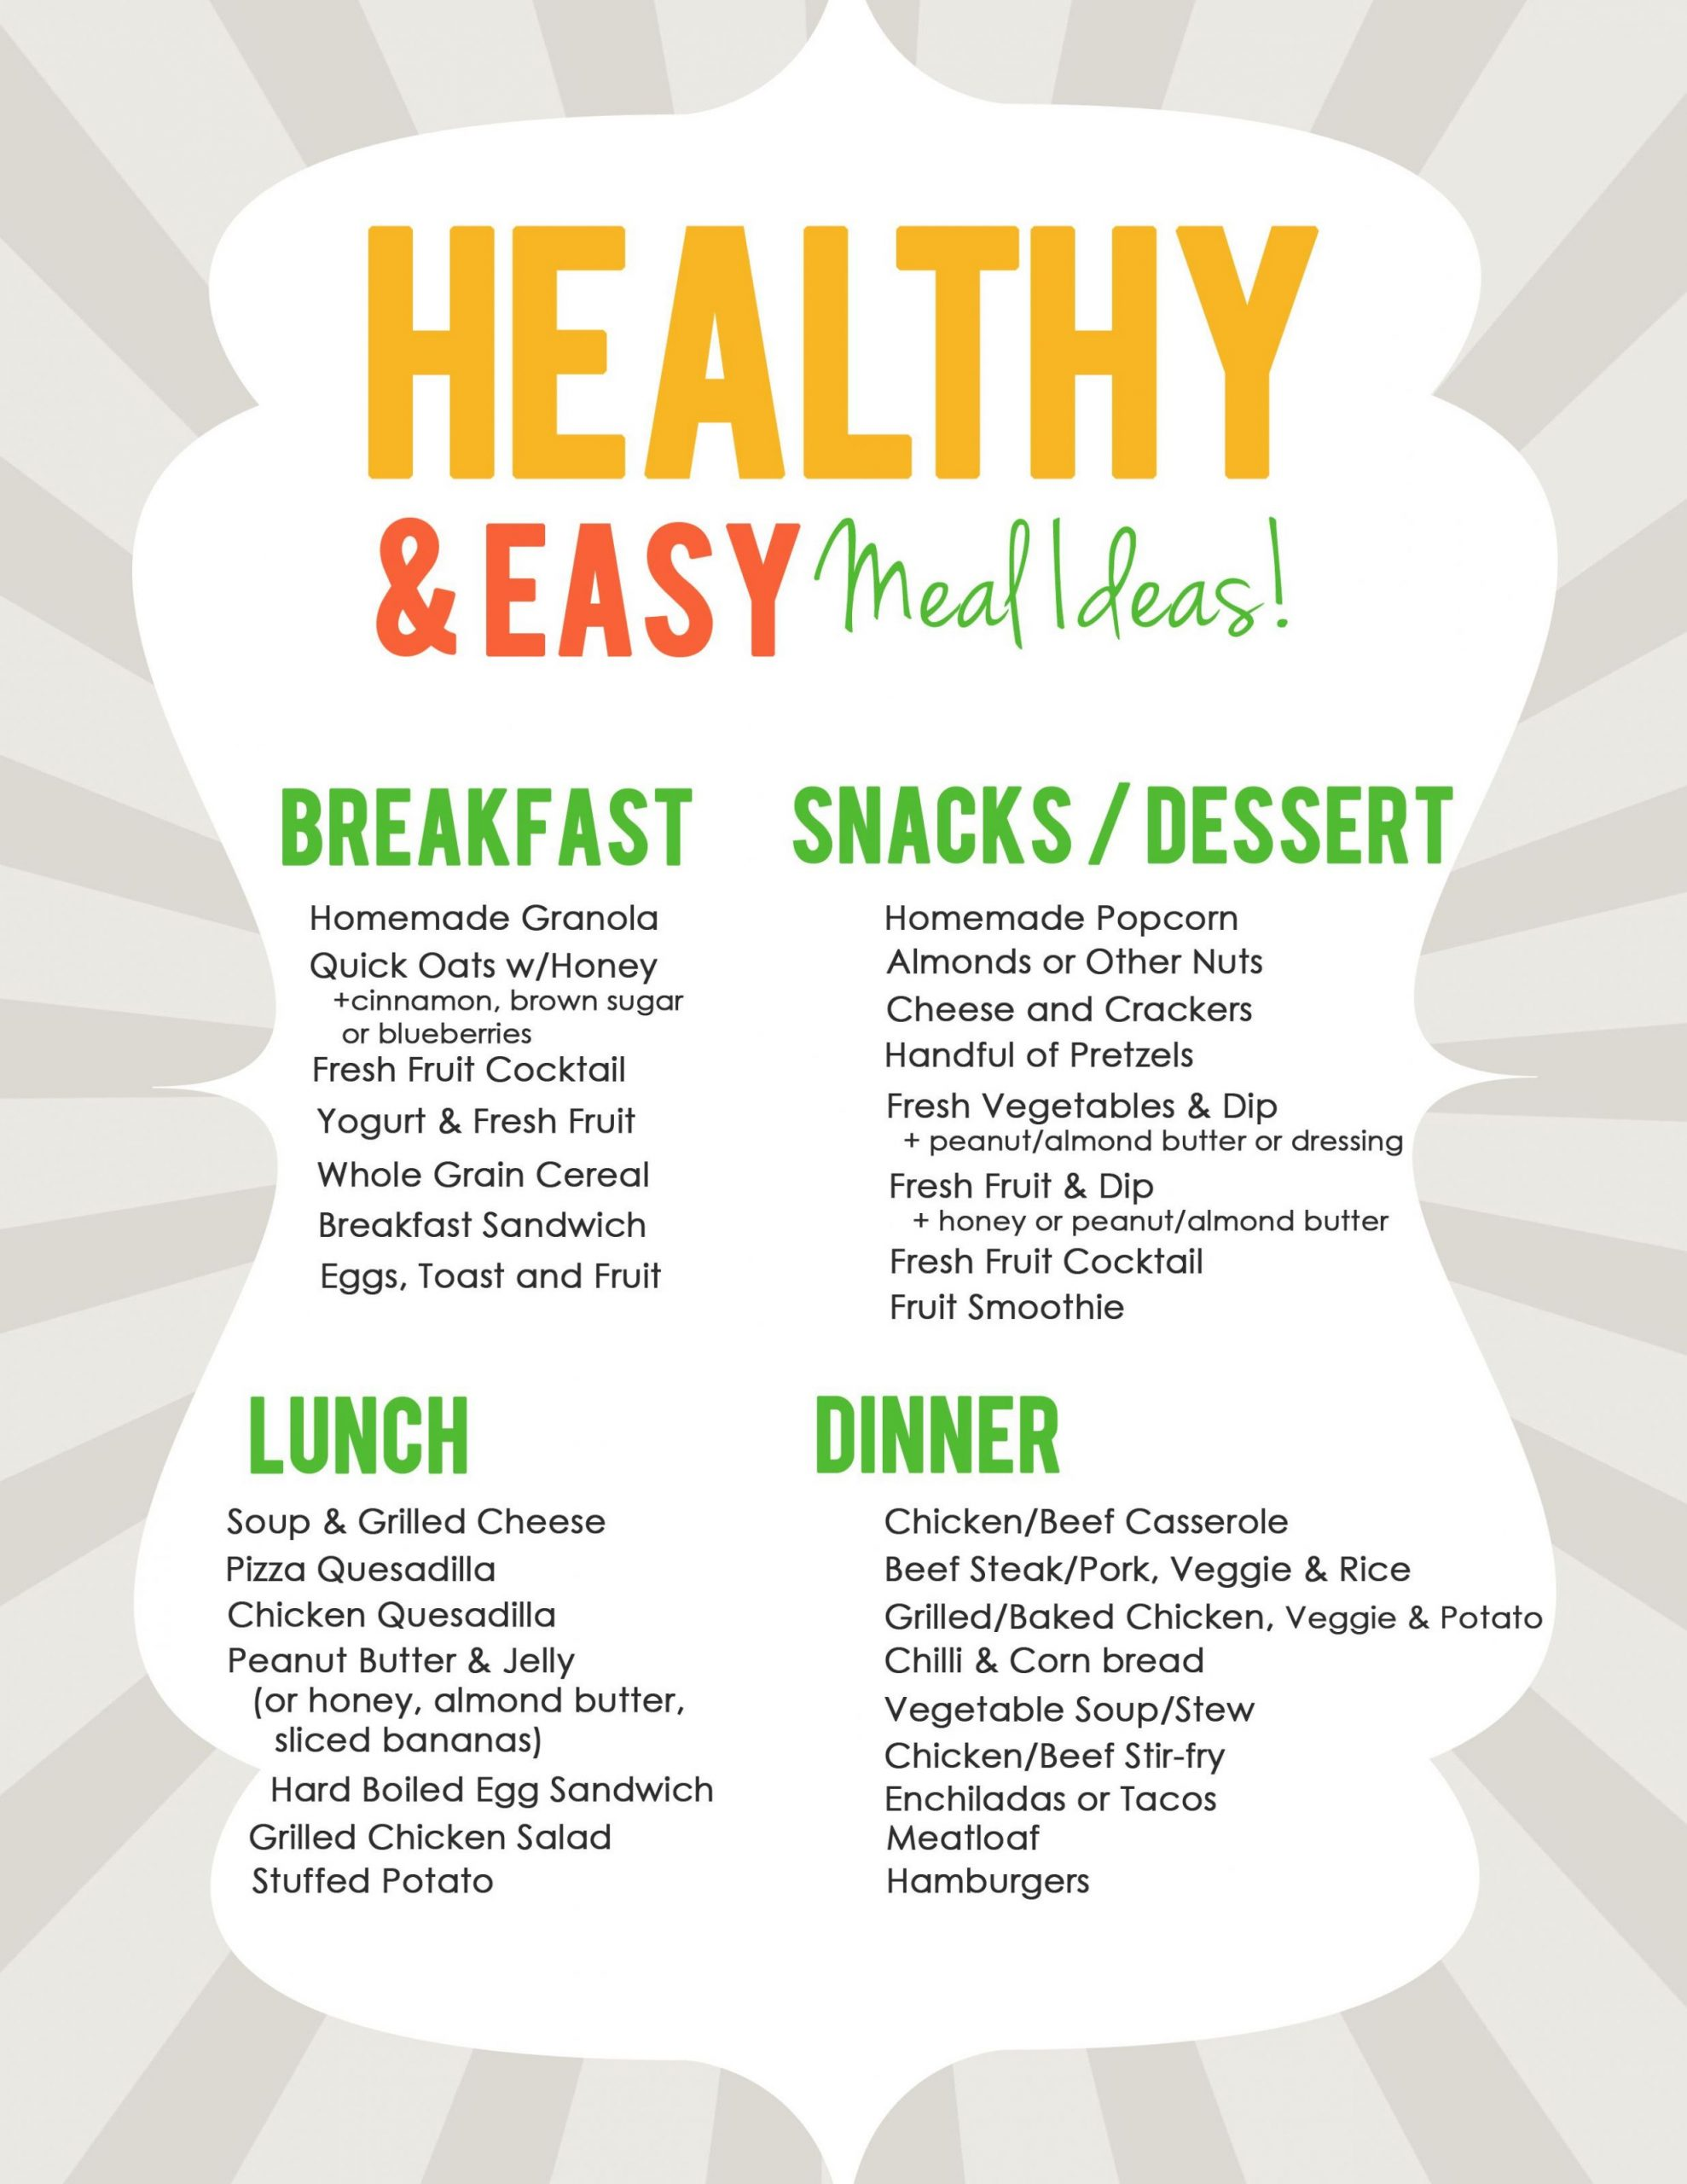 Easy & Healthy Meal Ideas List for Meal Planning | Healthy, Easy ...